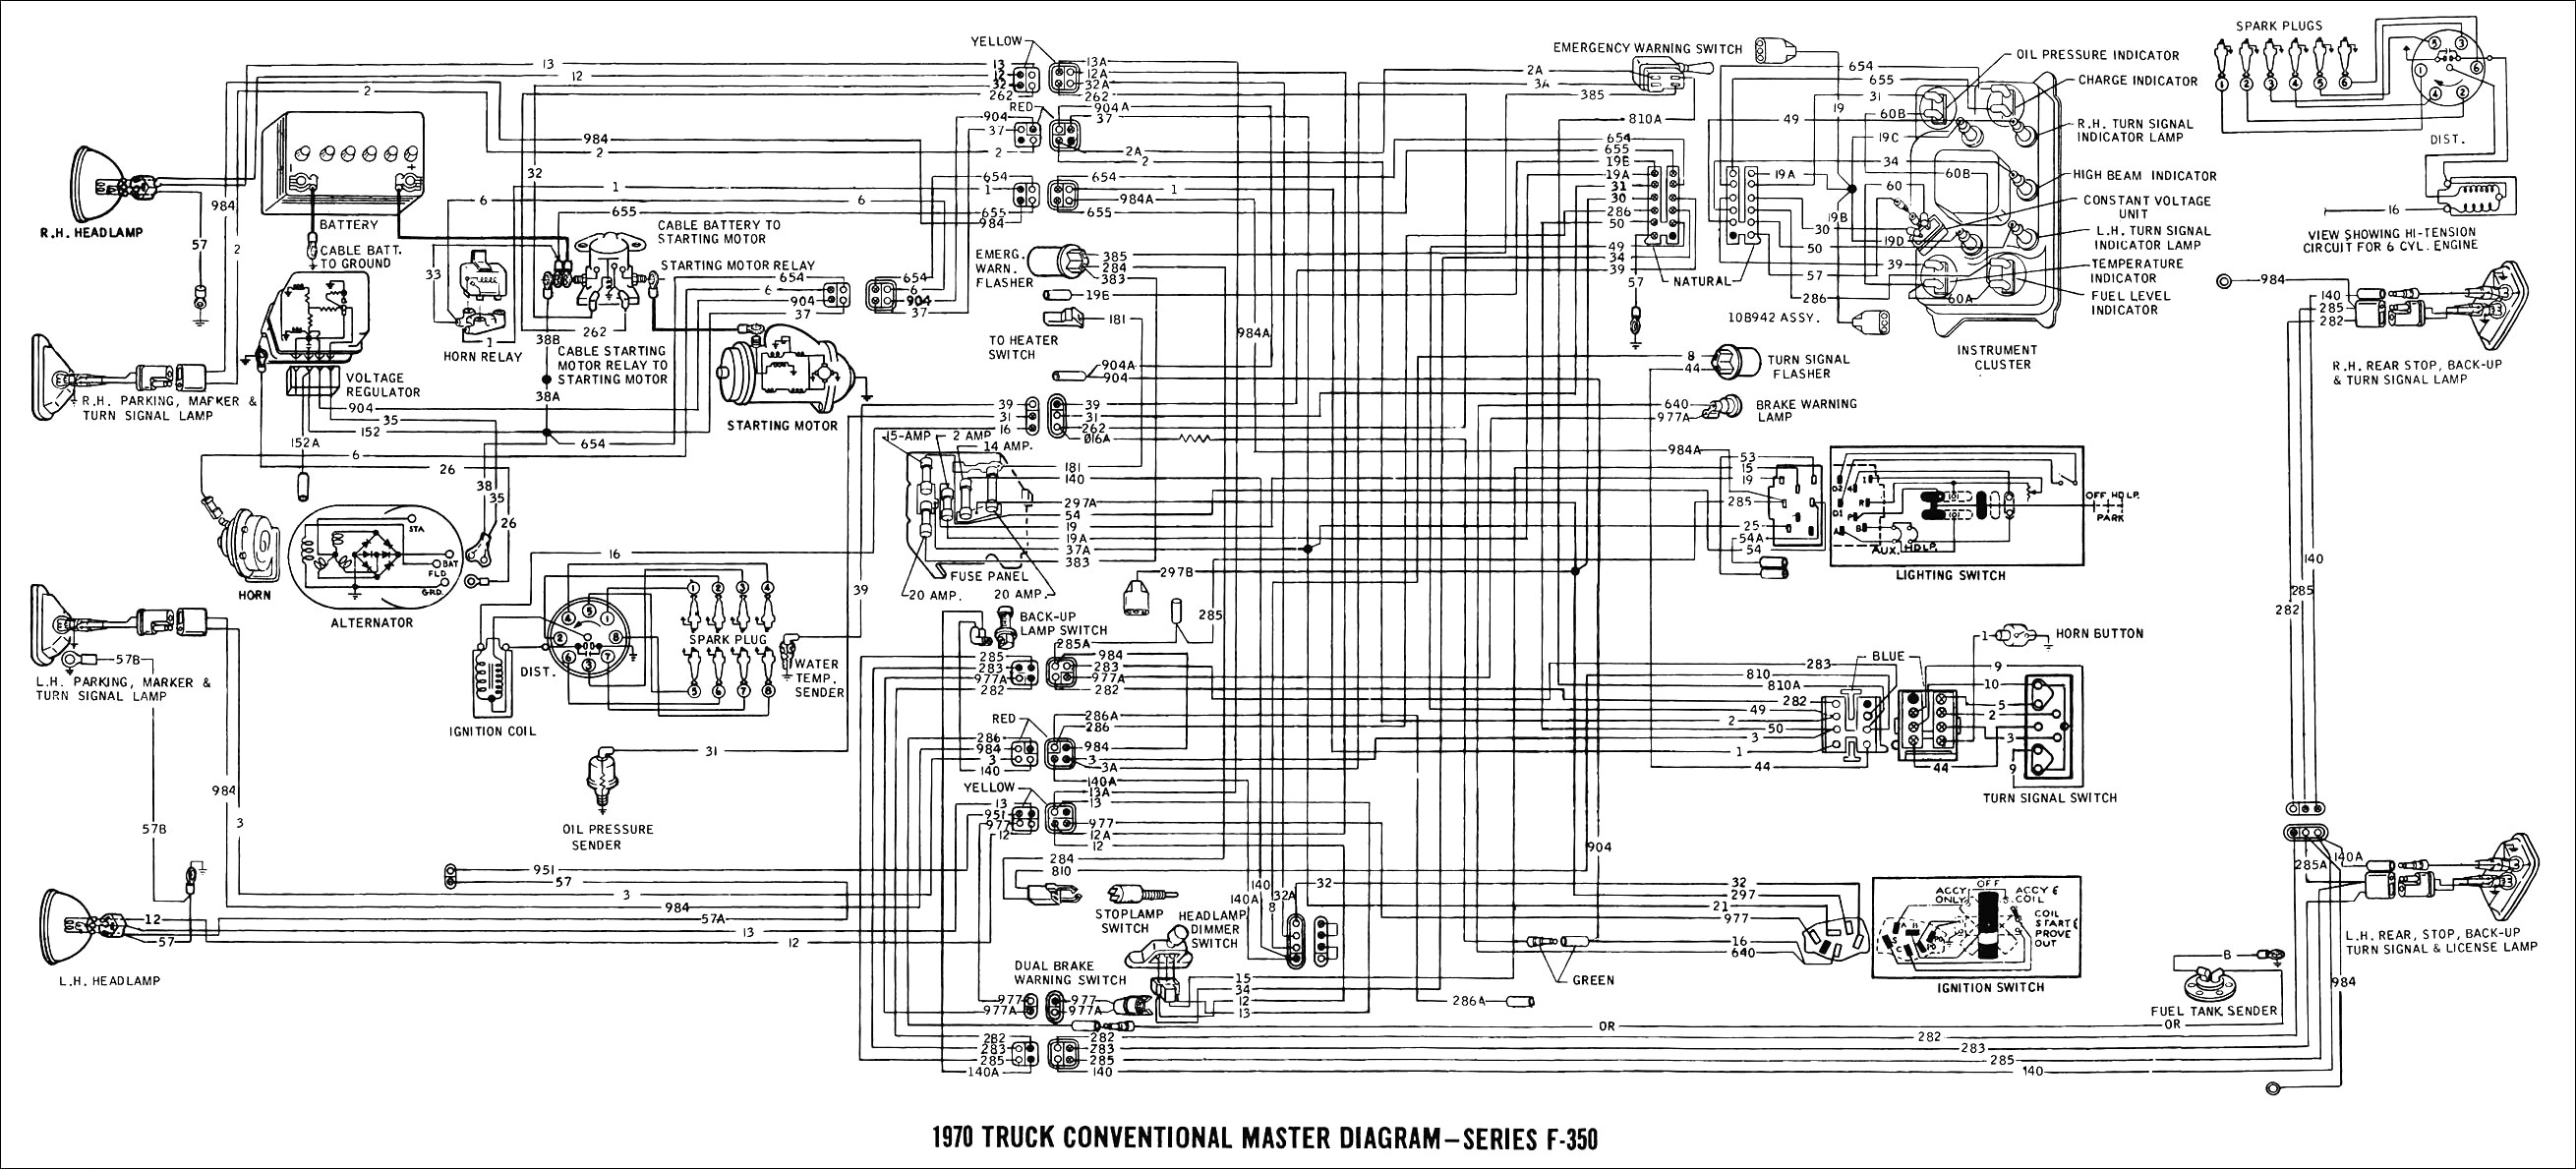 97 ford ranger engine diagram